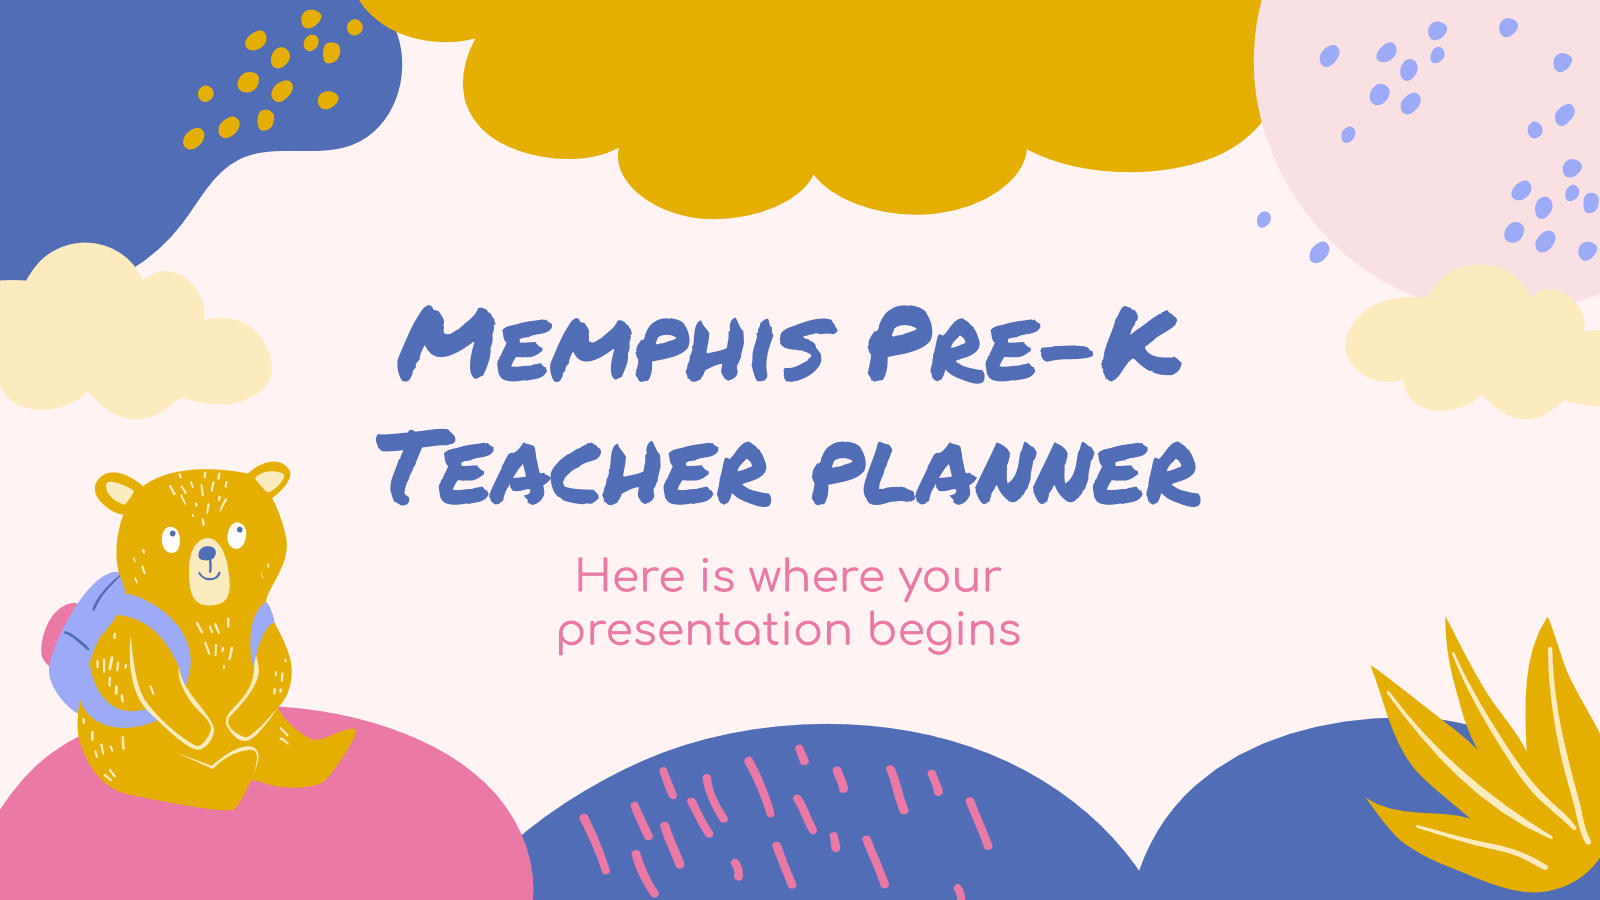 Memphis Pre-K Teacher Planner presentation template